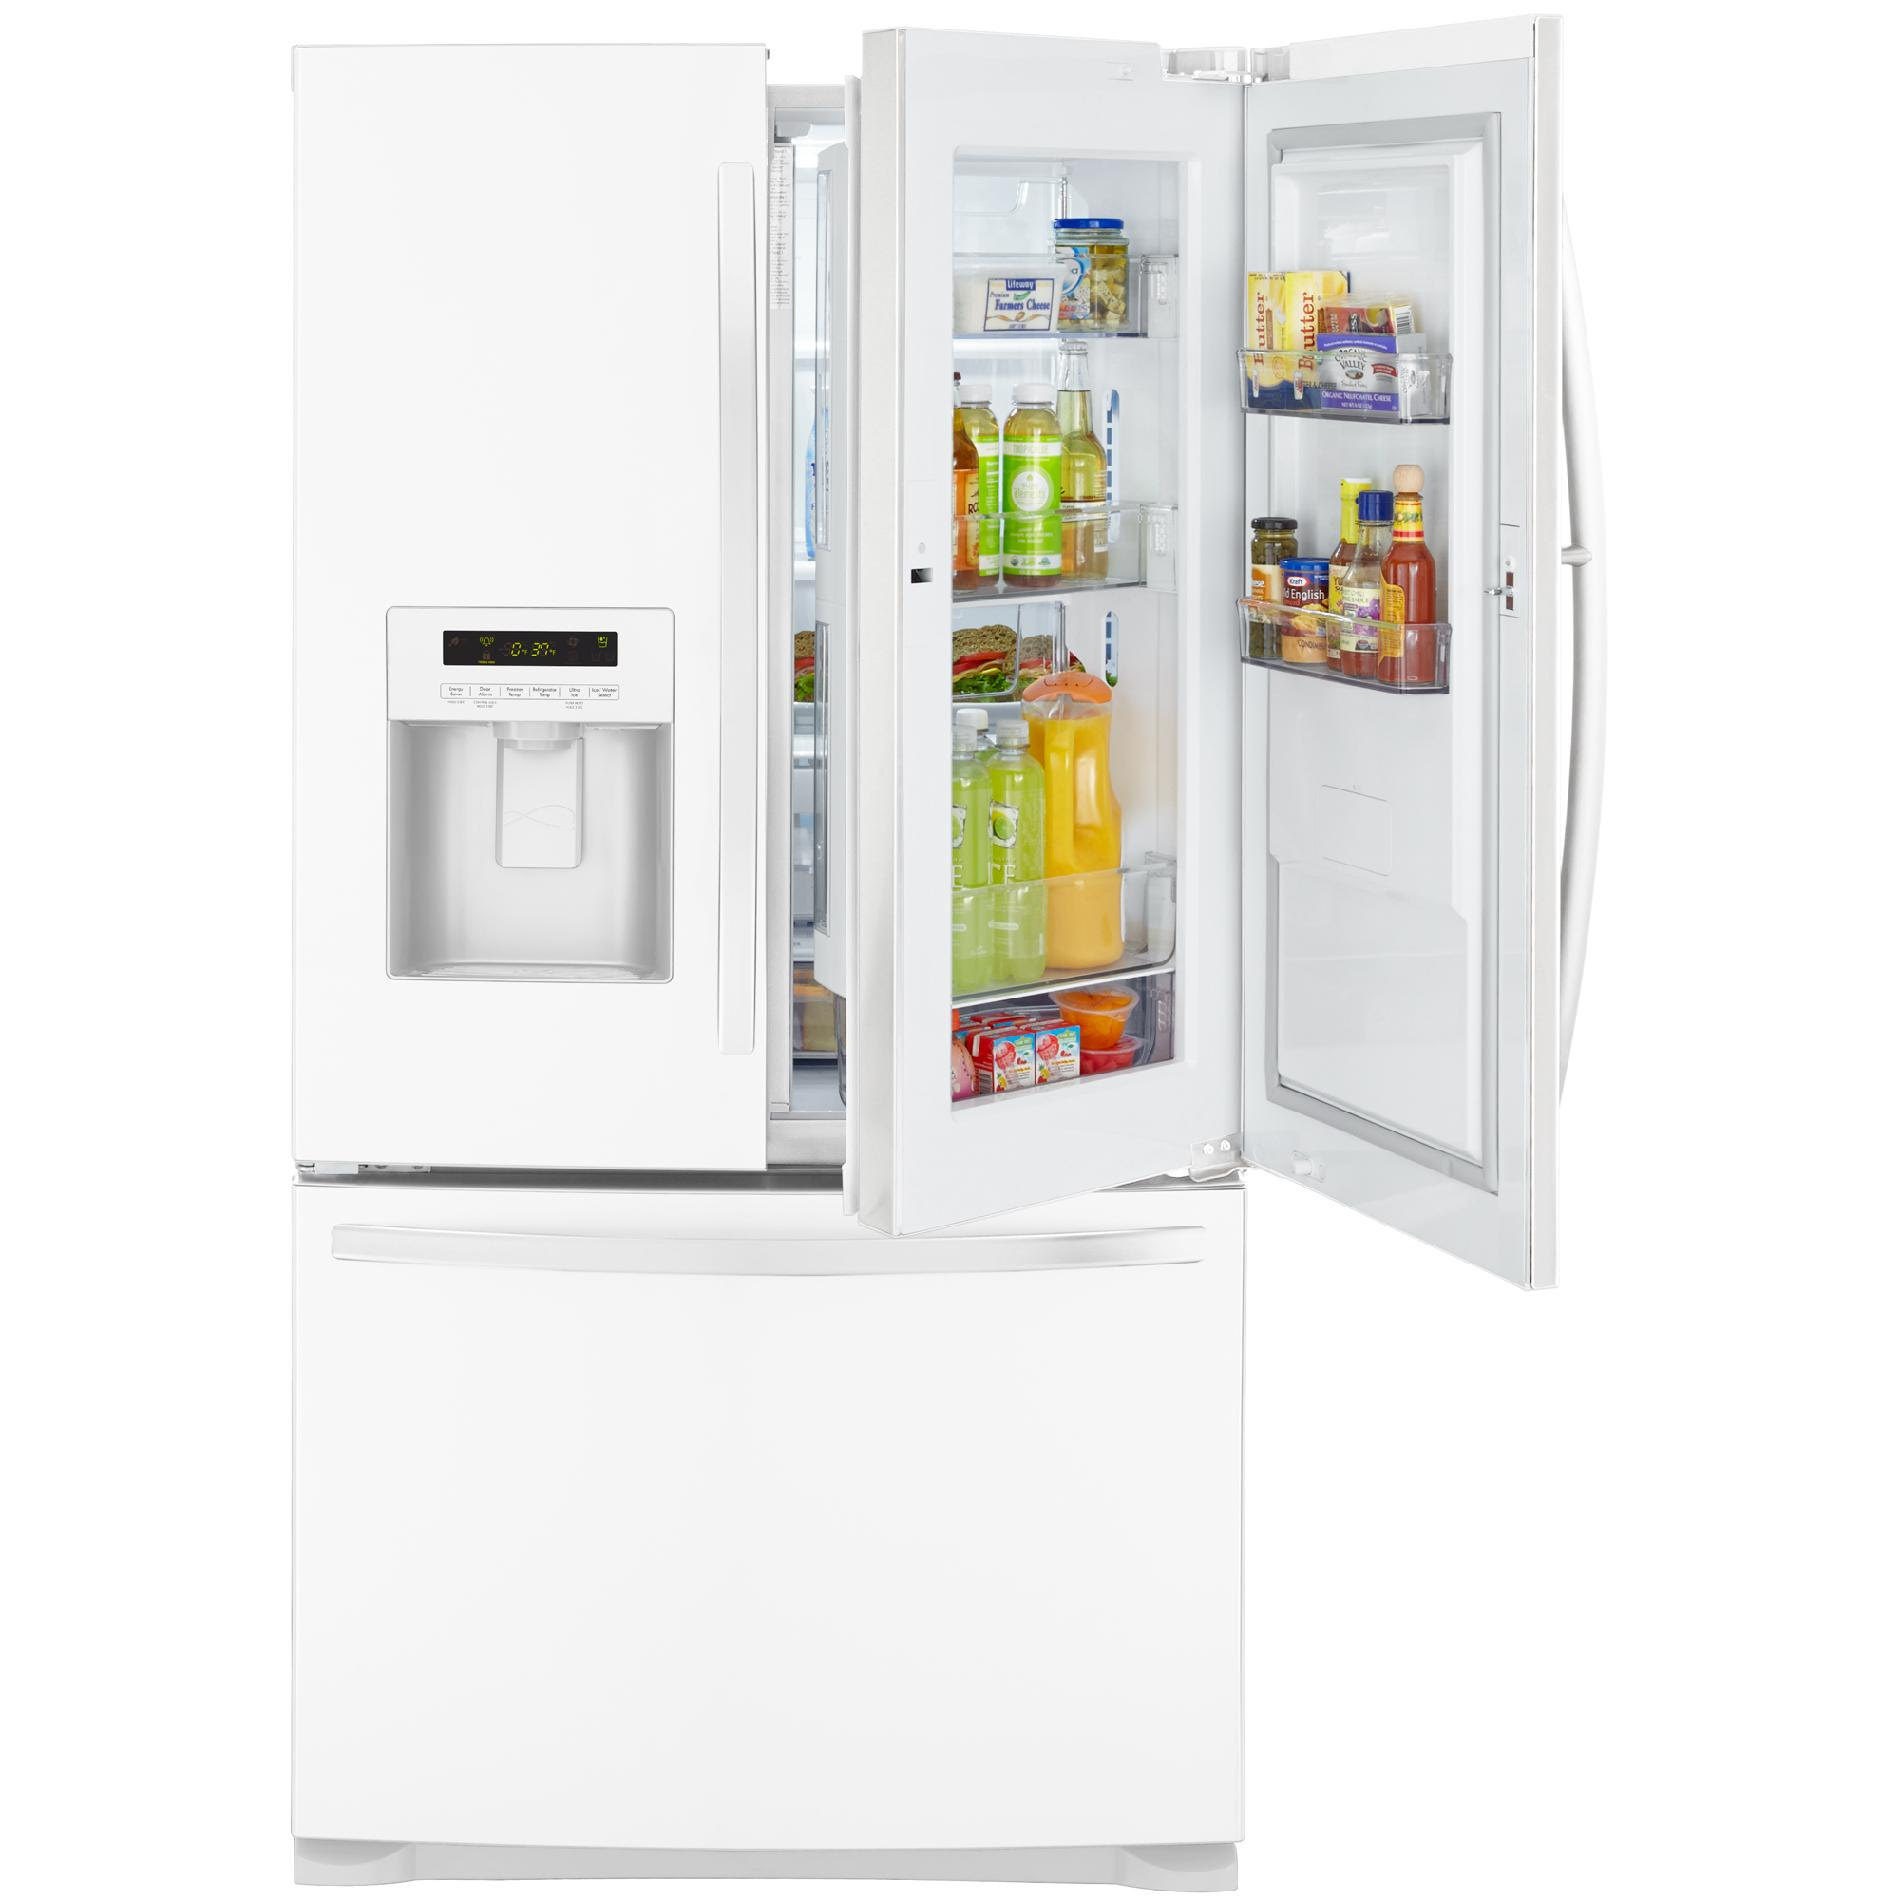 Kenmore 23 9 cu ft French Door Bottom Freezer Refrigerator w